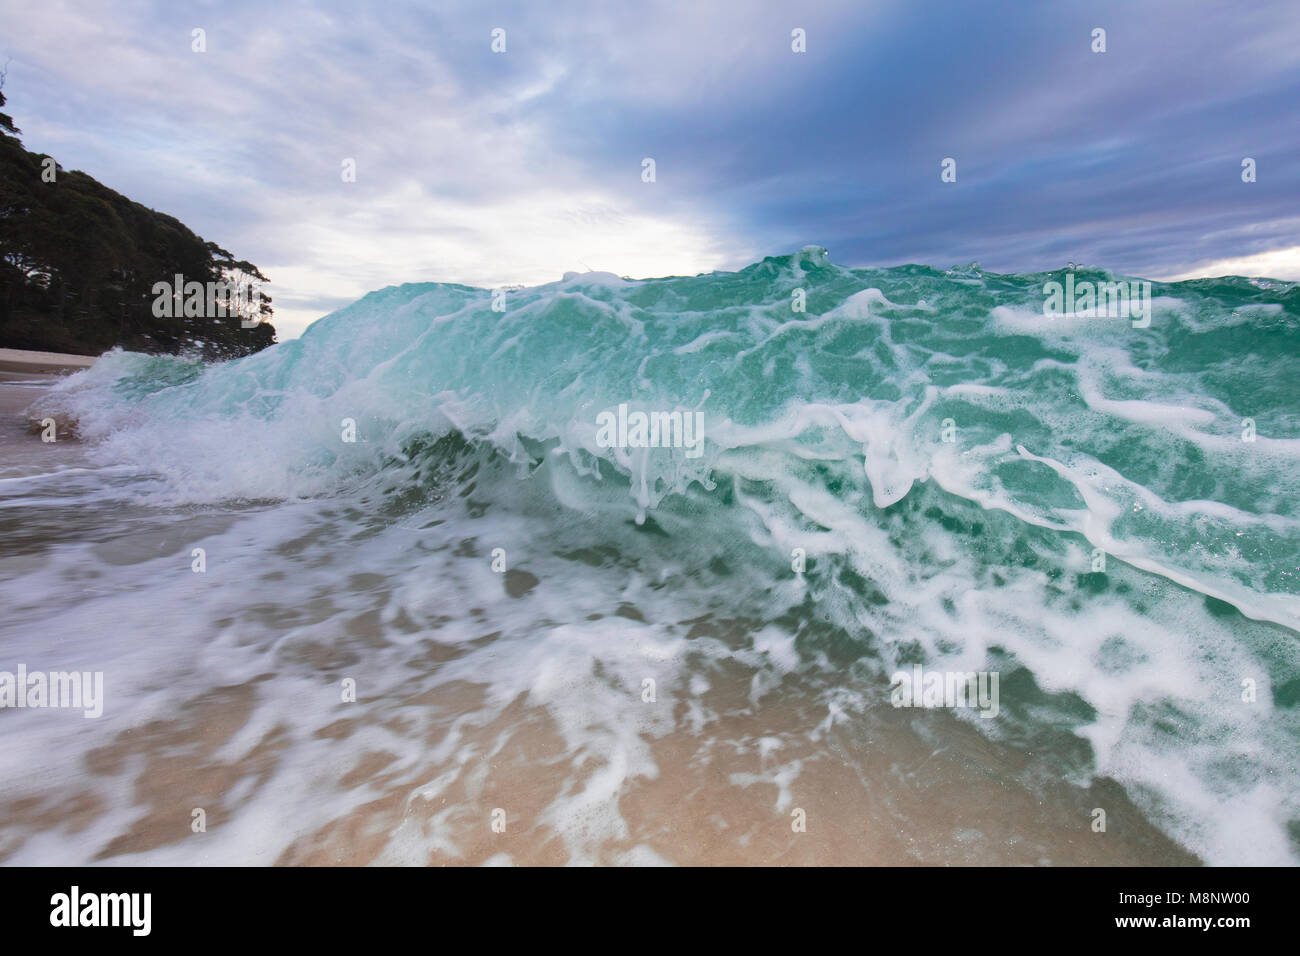 Colourful shore break with lots of energy - Stock Image